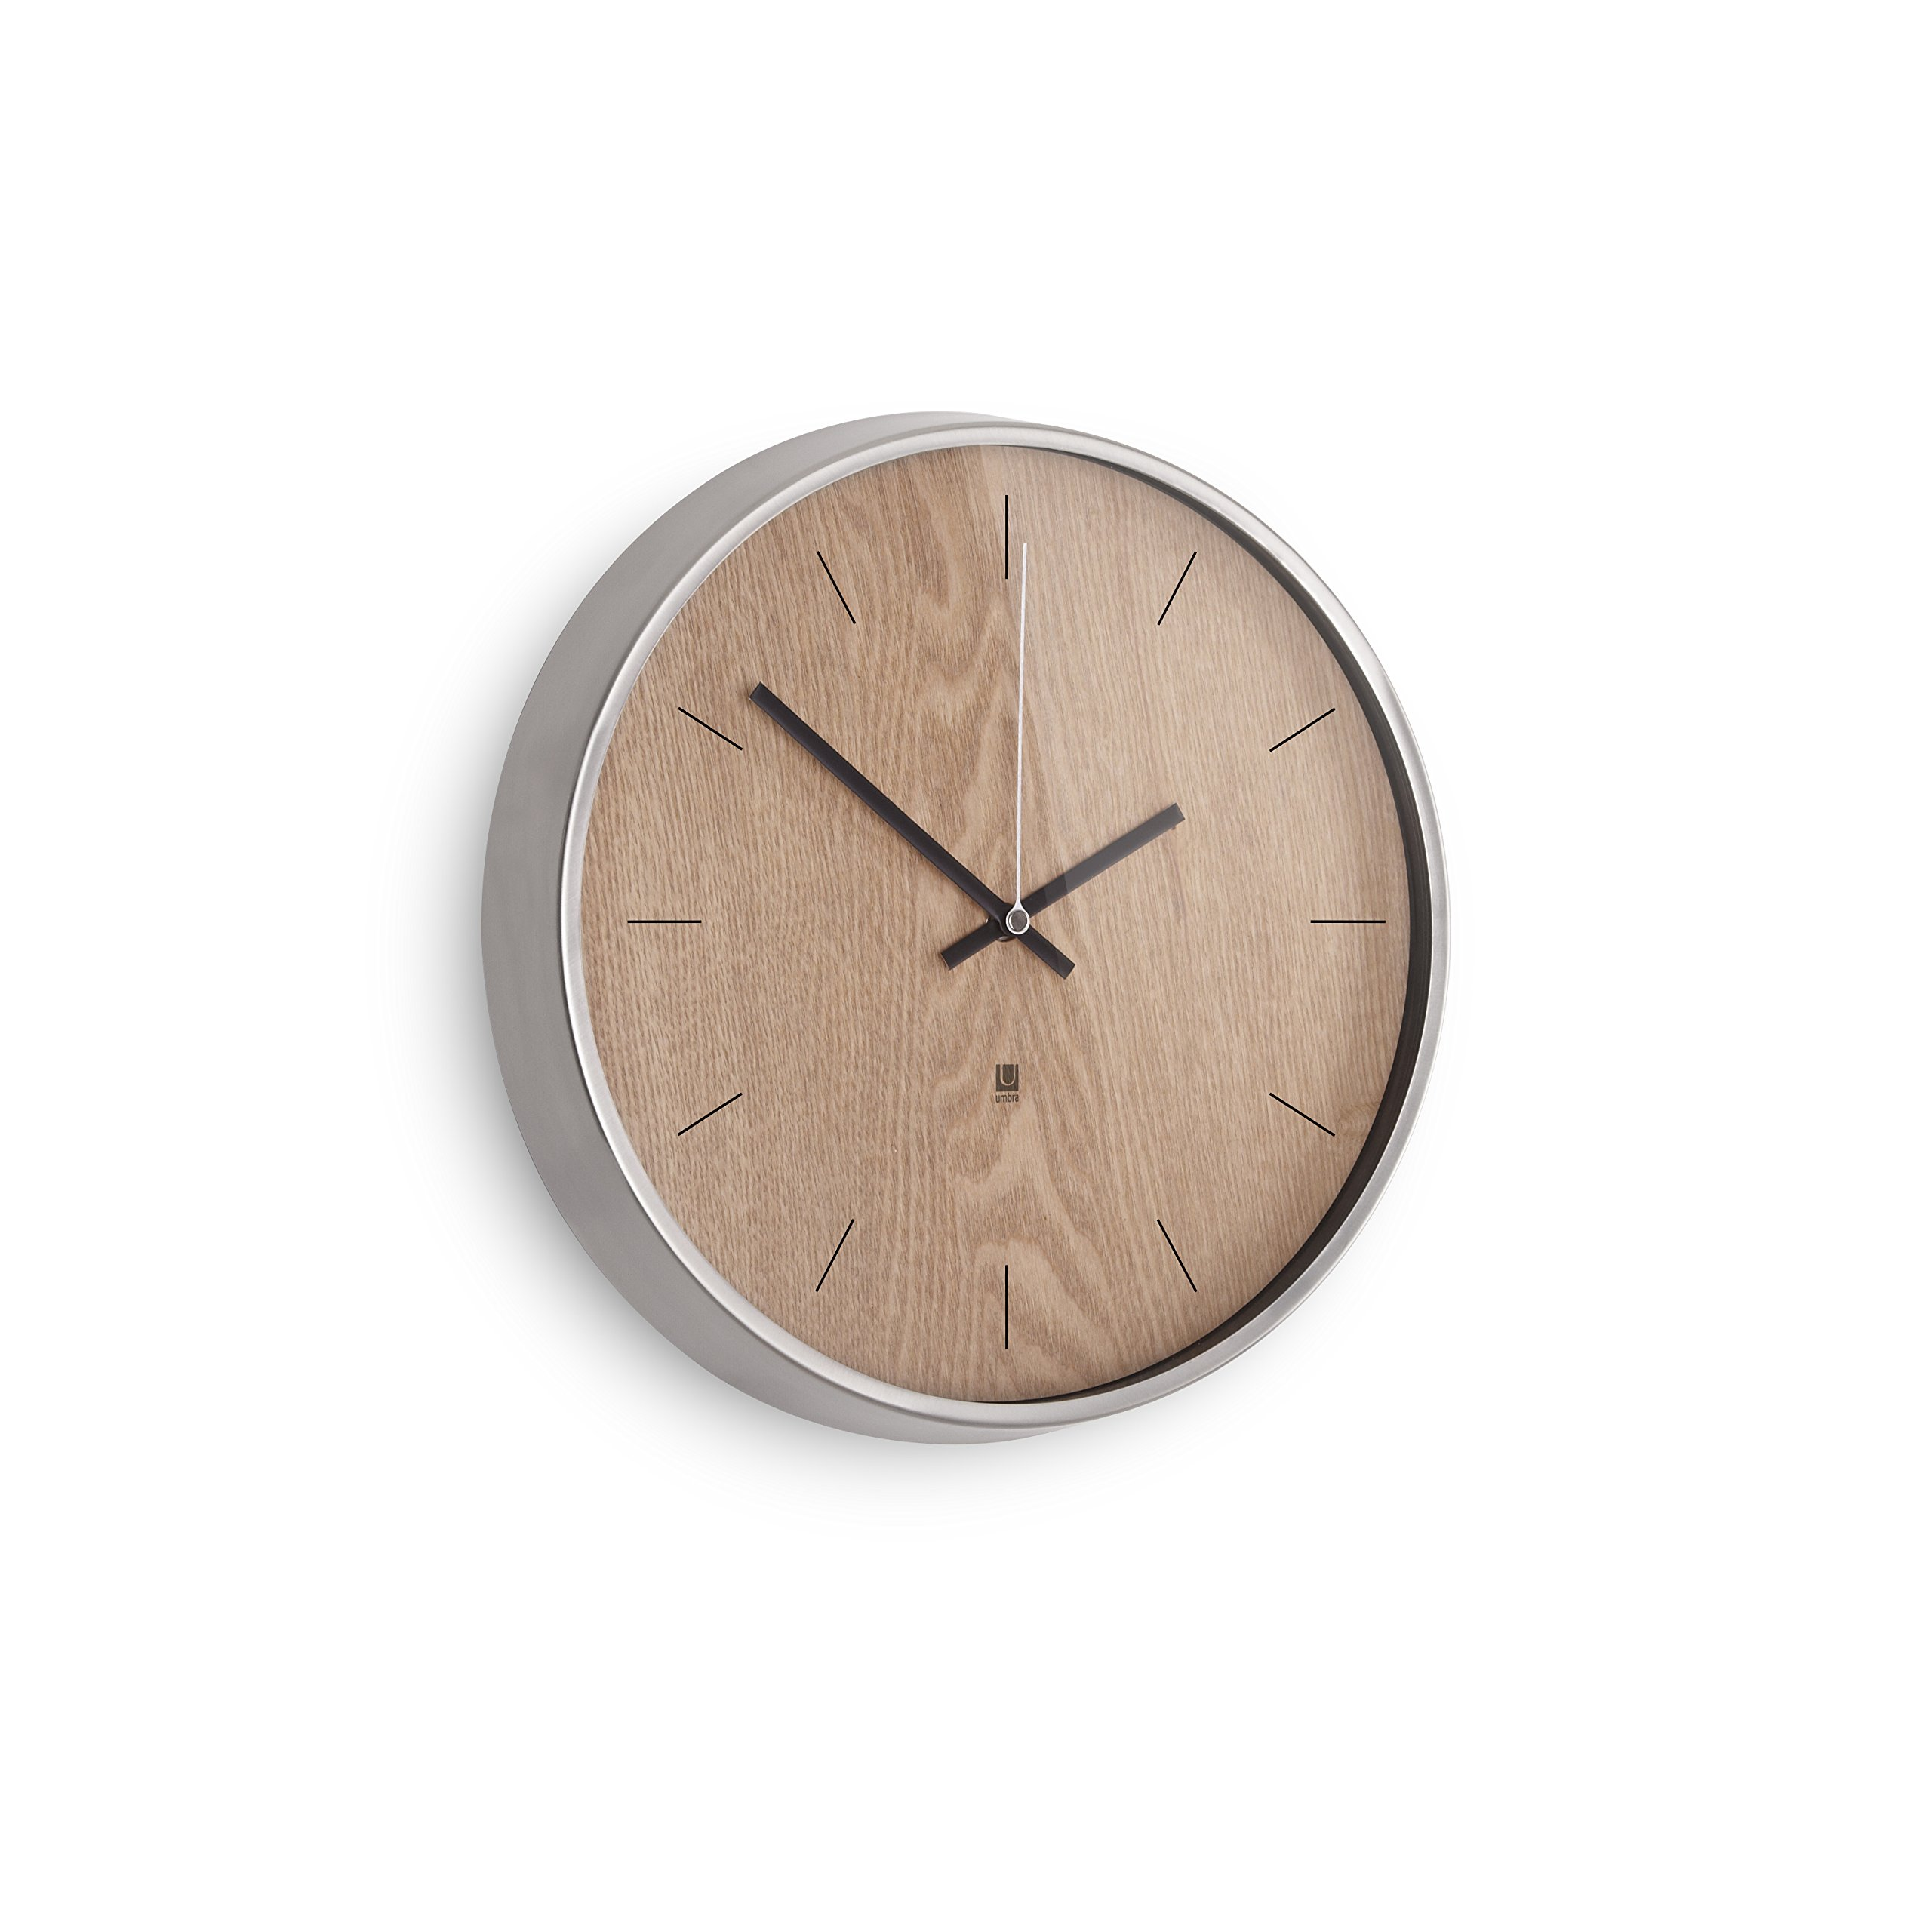 Umbra Madera Wall Clock, Natural/Nickel